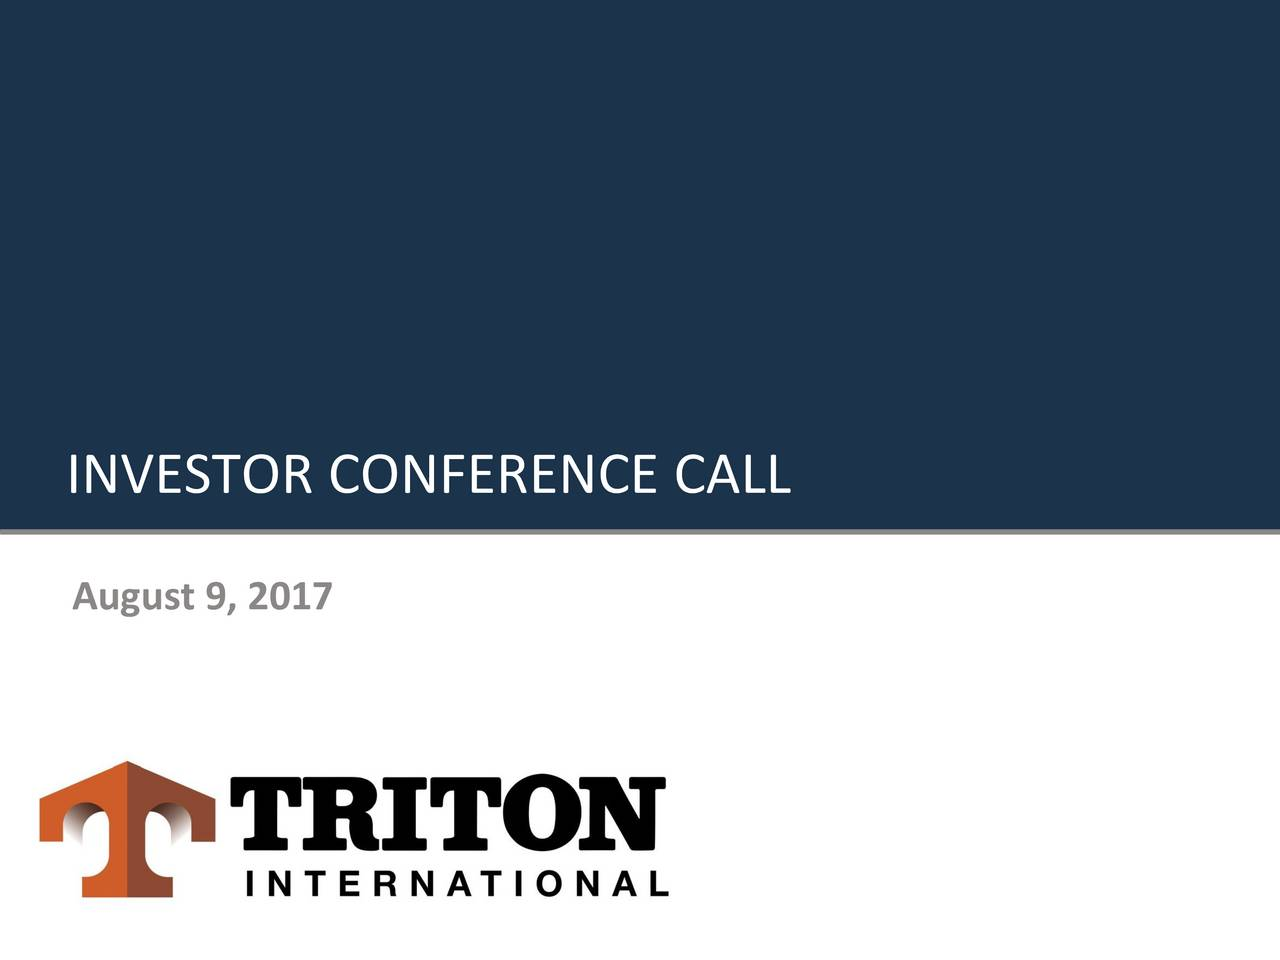 Investor Conference Call